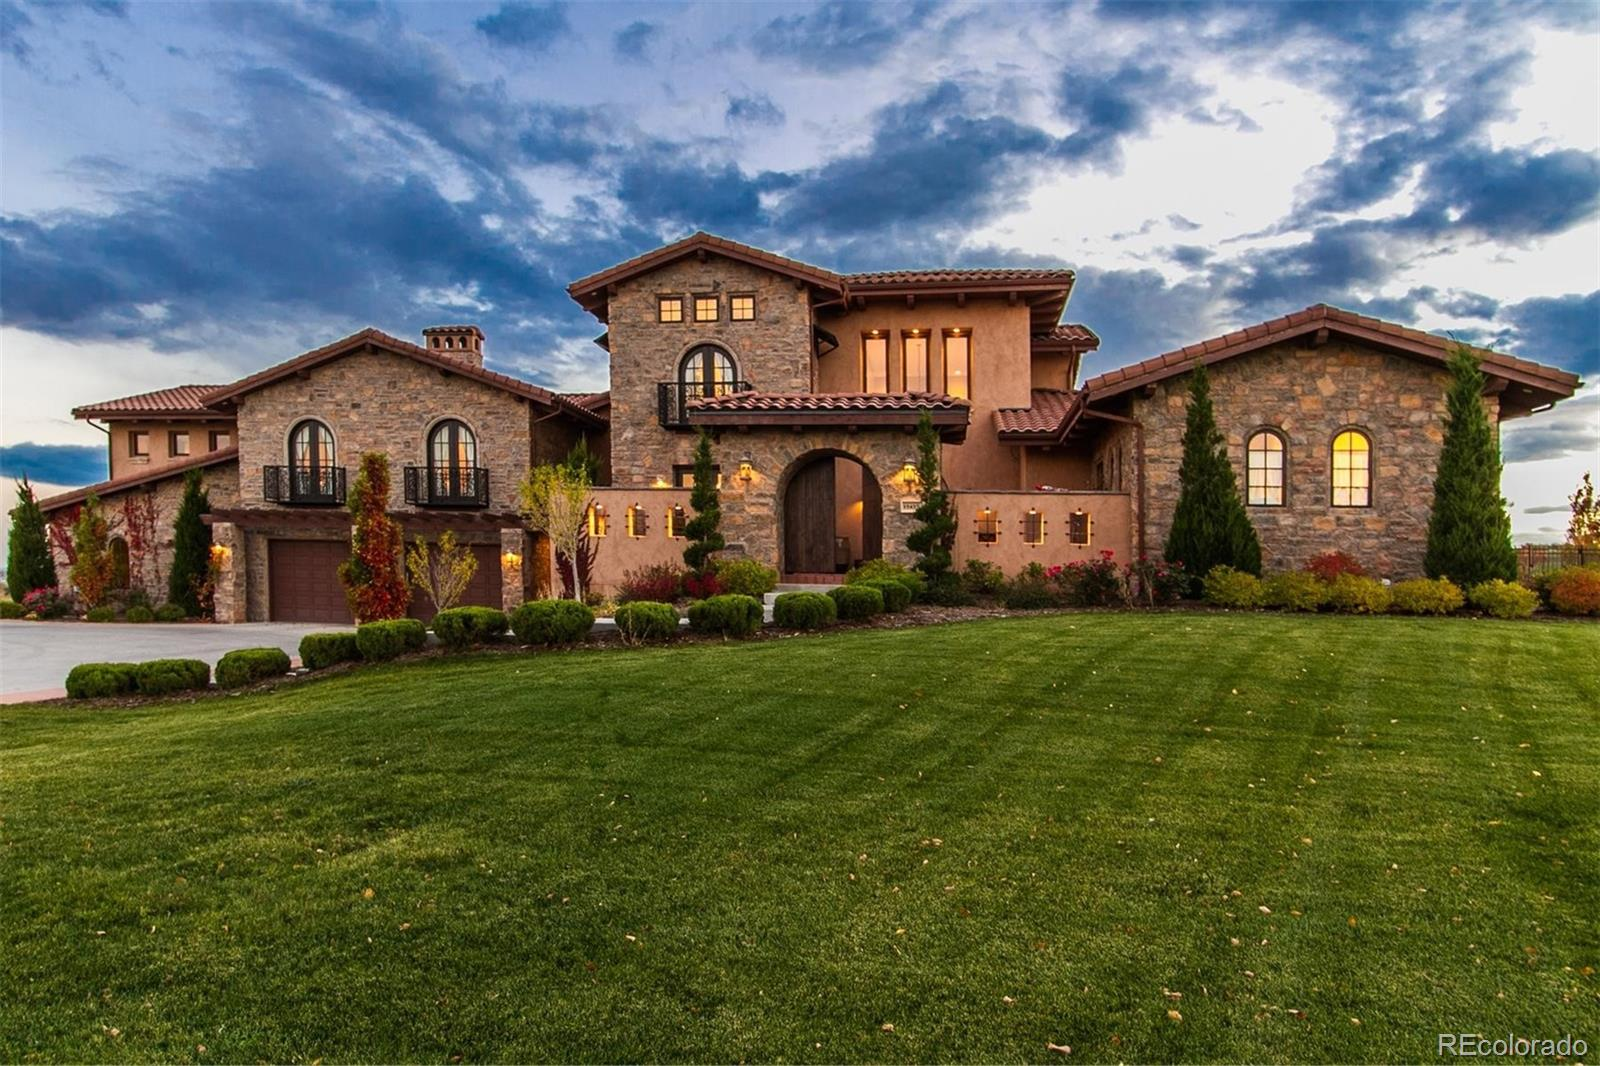 15437 Mountain View Circle, Broomfield, CO 80023 - Broomfield, CO real estate listing